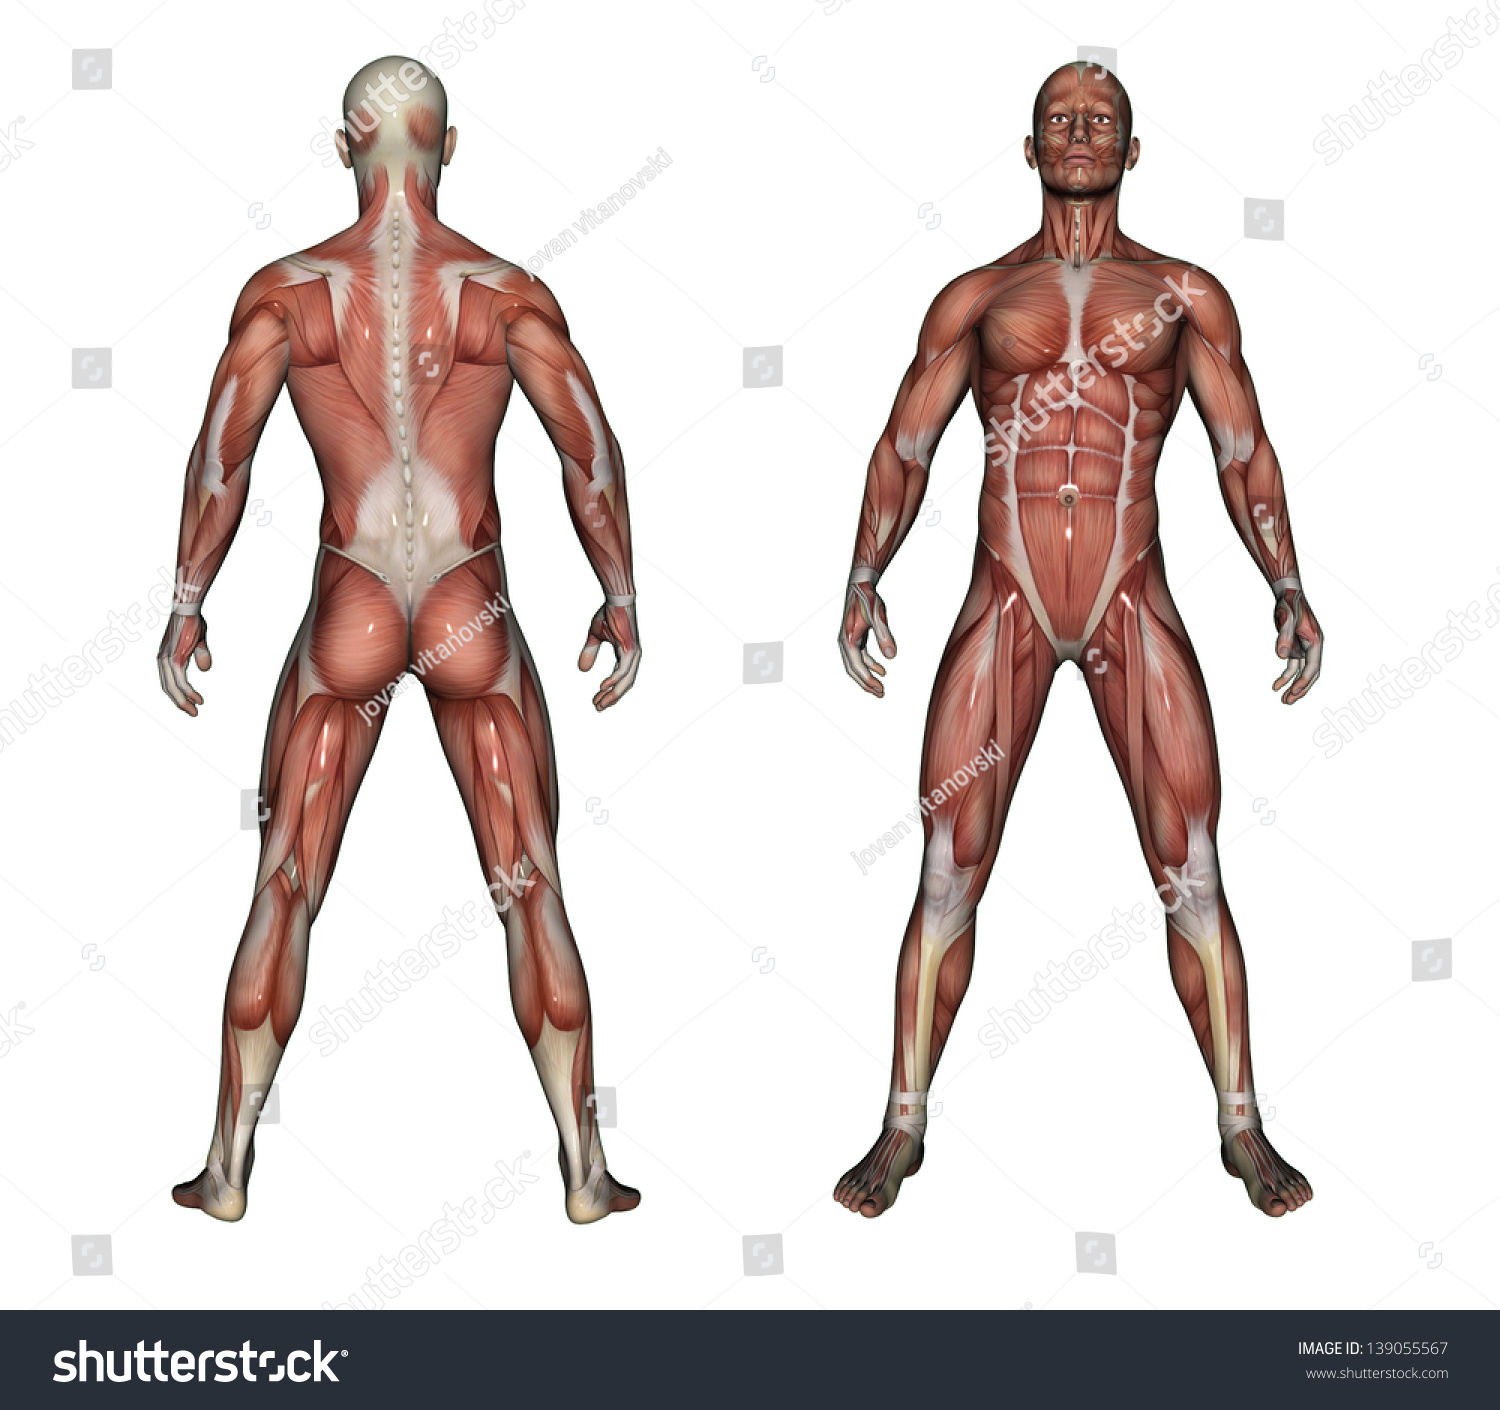 Royalty Free Stock Illustration Of Human Anatomy Male Muscles Made 3